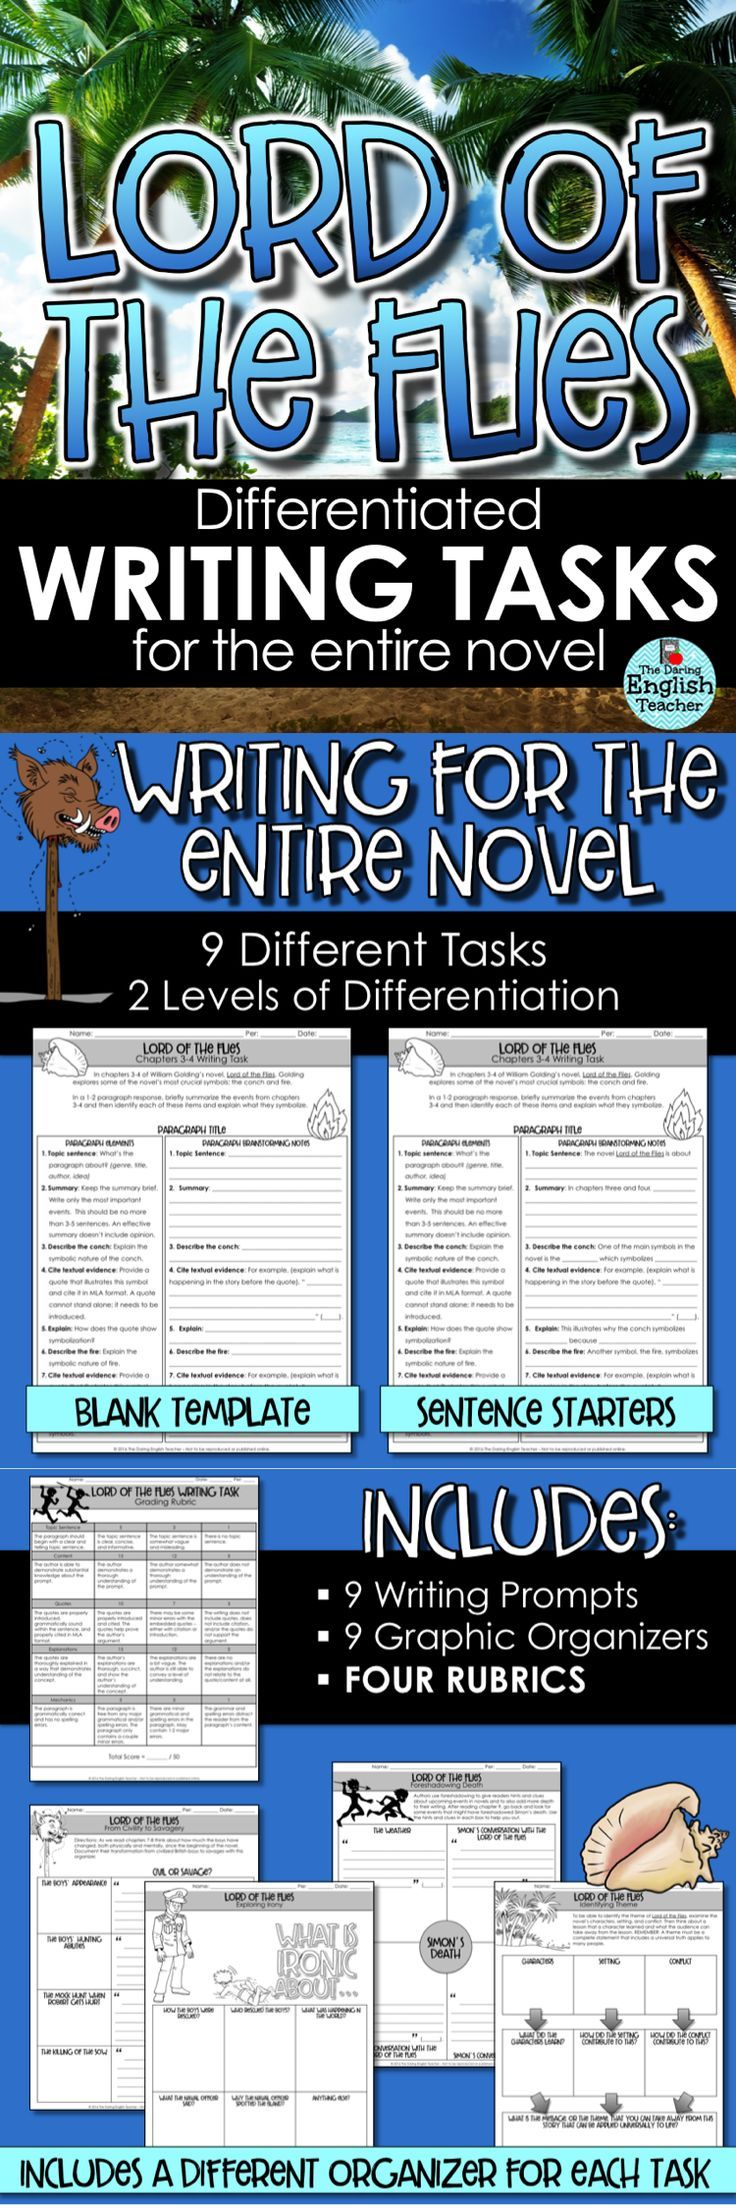 lord of the flies writing tasks for the entire novel literature lord of the flies writing prompts and tasks for the entire novel this differentiated writing tasks is a teaching unit in itself and includes